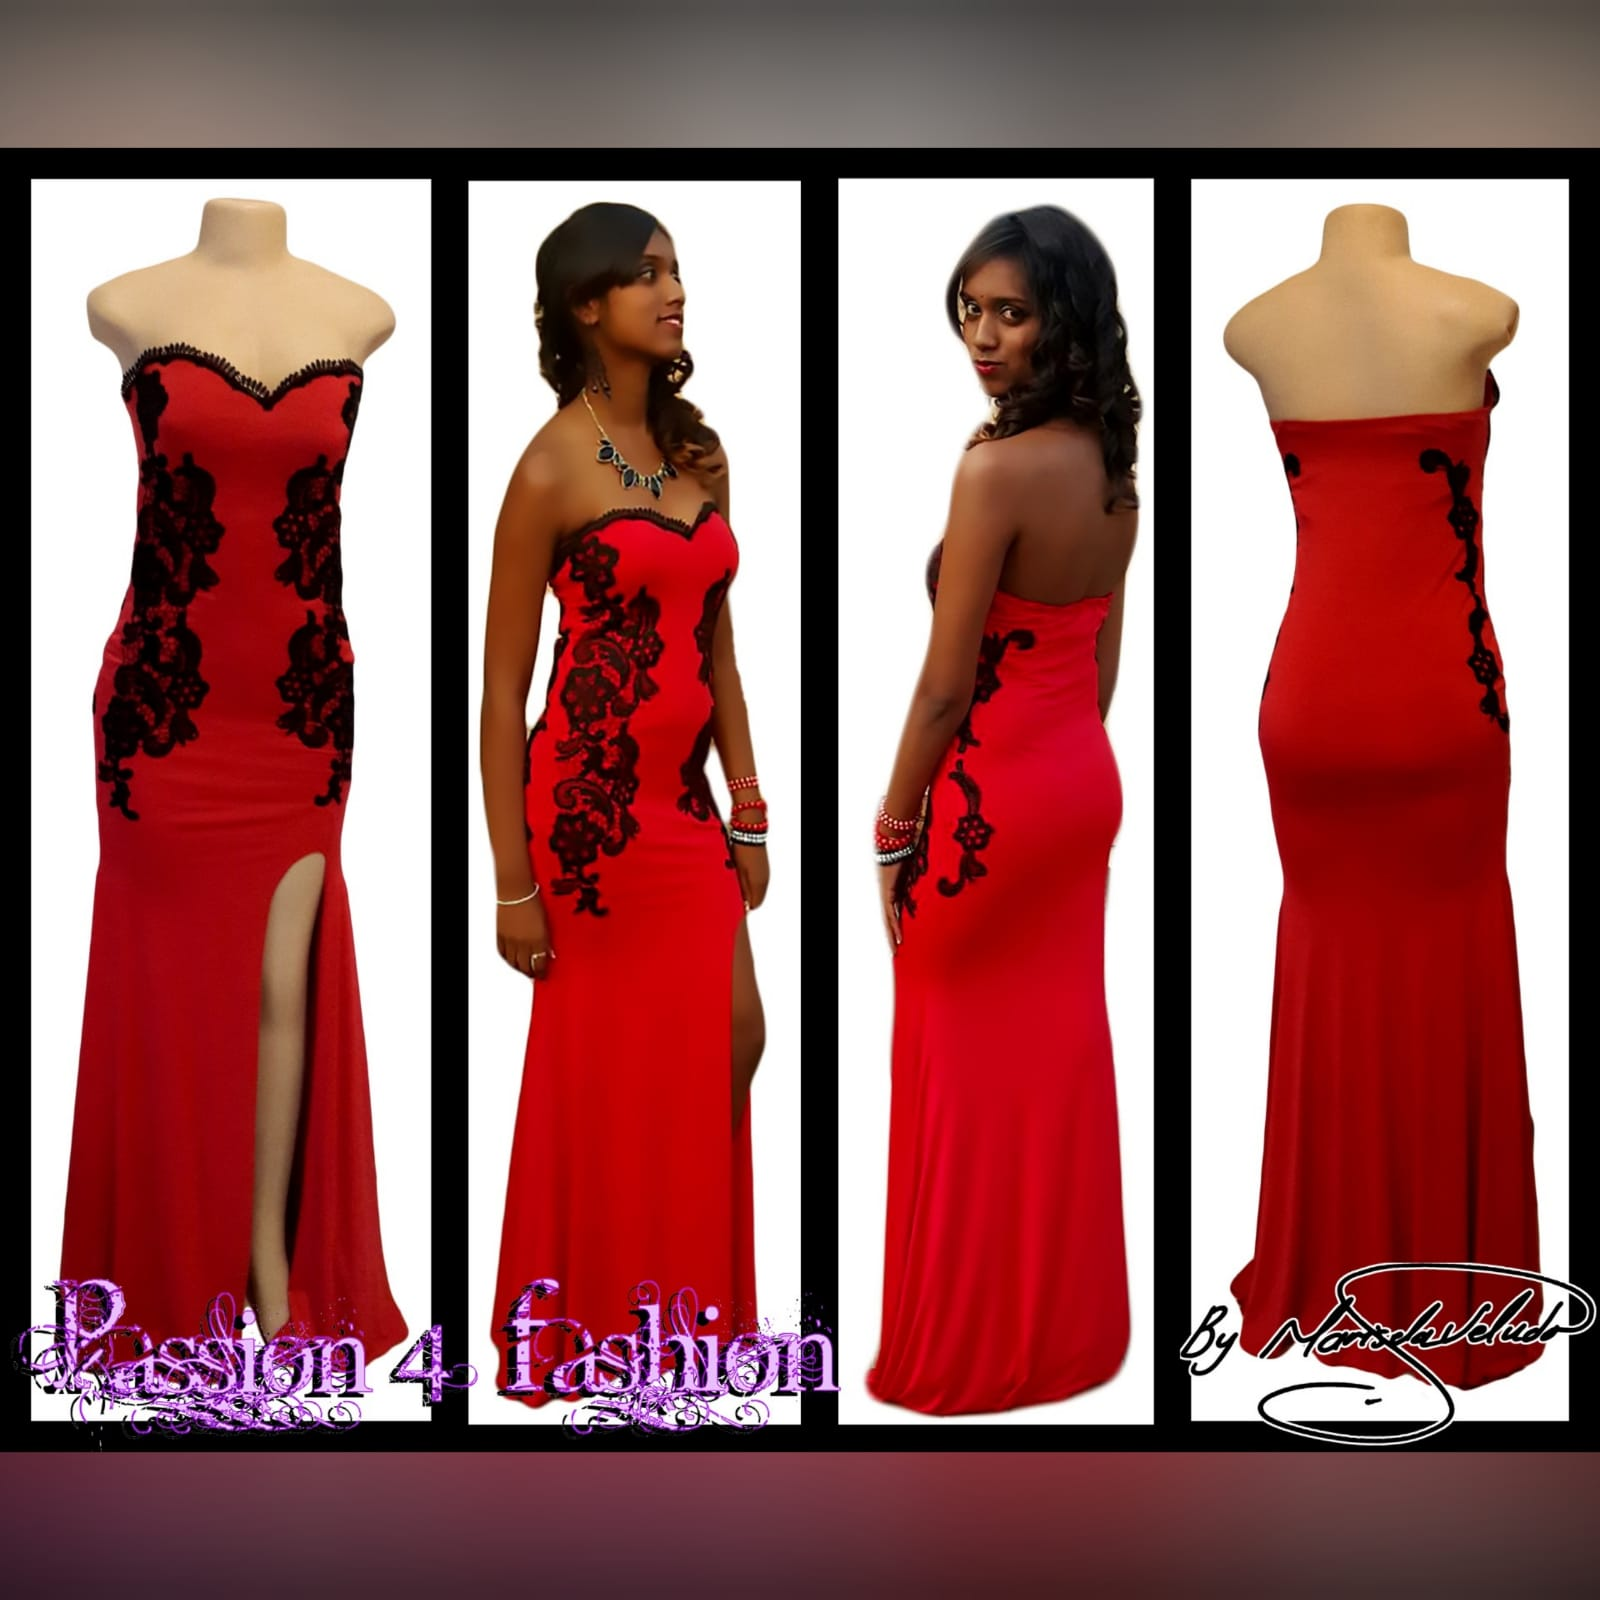 Red evening dress detailed with black lace 4 red evening dress detailed with black lace on the sides, front & back. With a sweetheart neckline finished with black scallop lace.